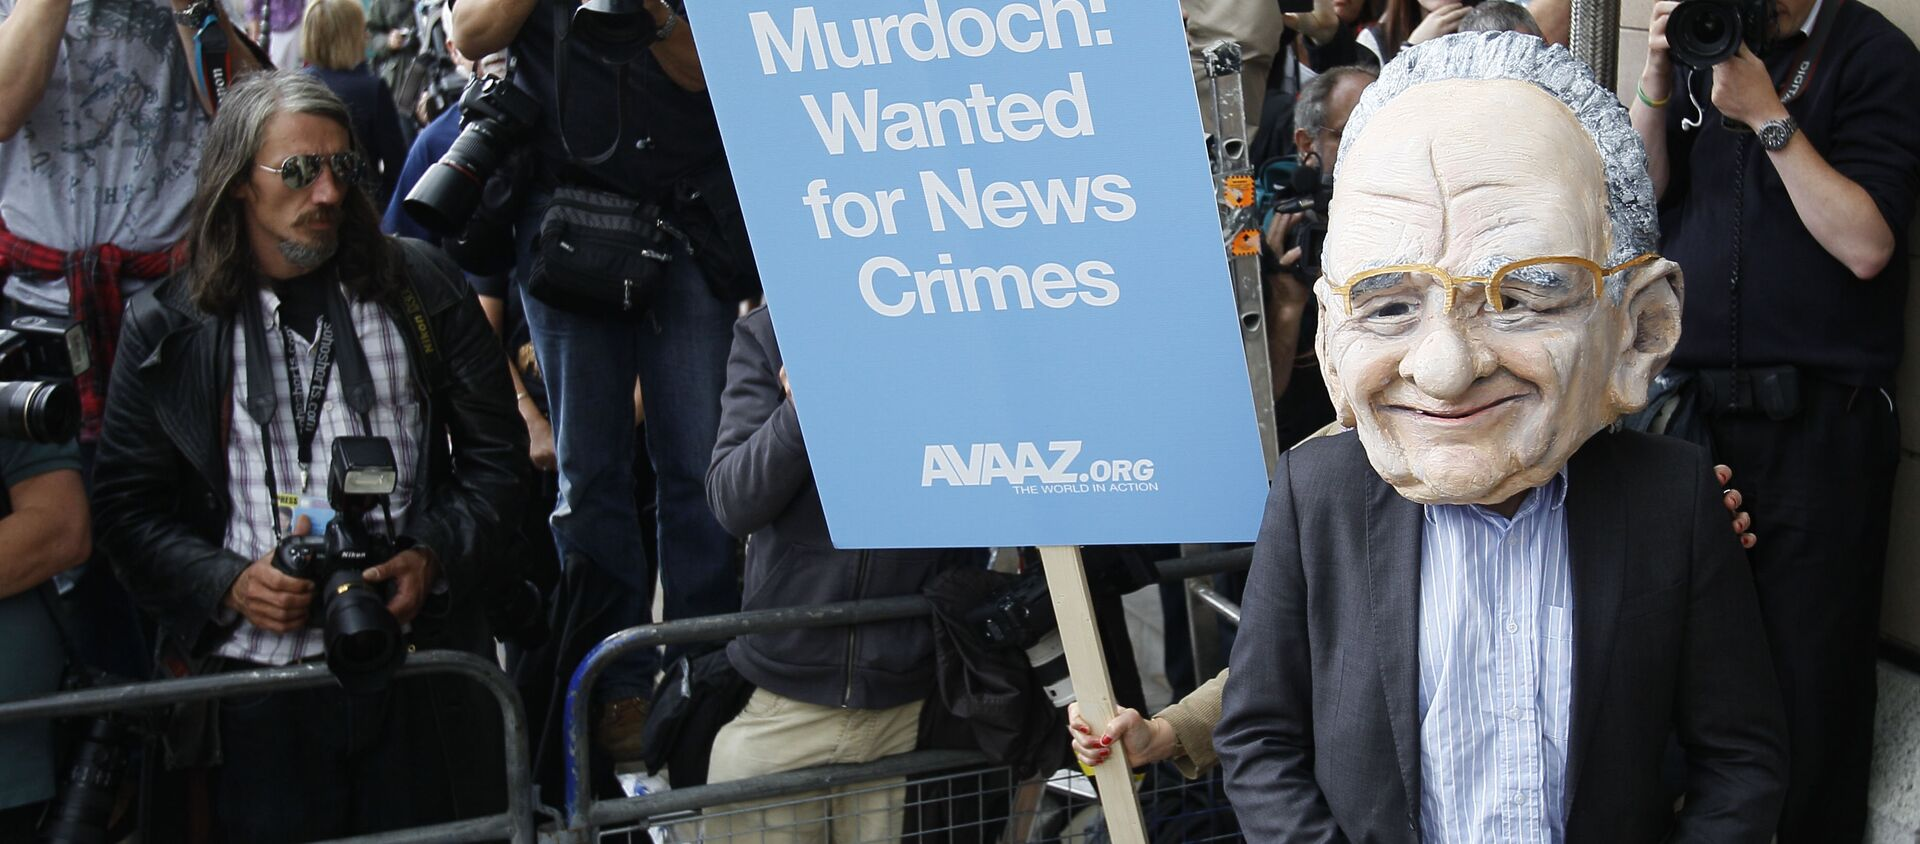 A protester wearing a Rupert Murdoch mask is photographed by media outside parliament in London, Tuesday, July 19, 2011.  - Sputnik International, 1920, 03.08.2021